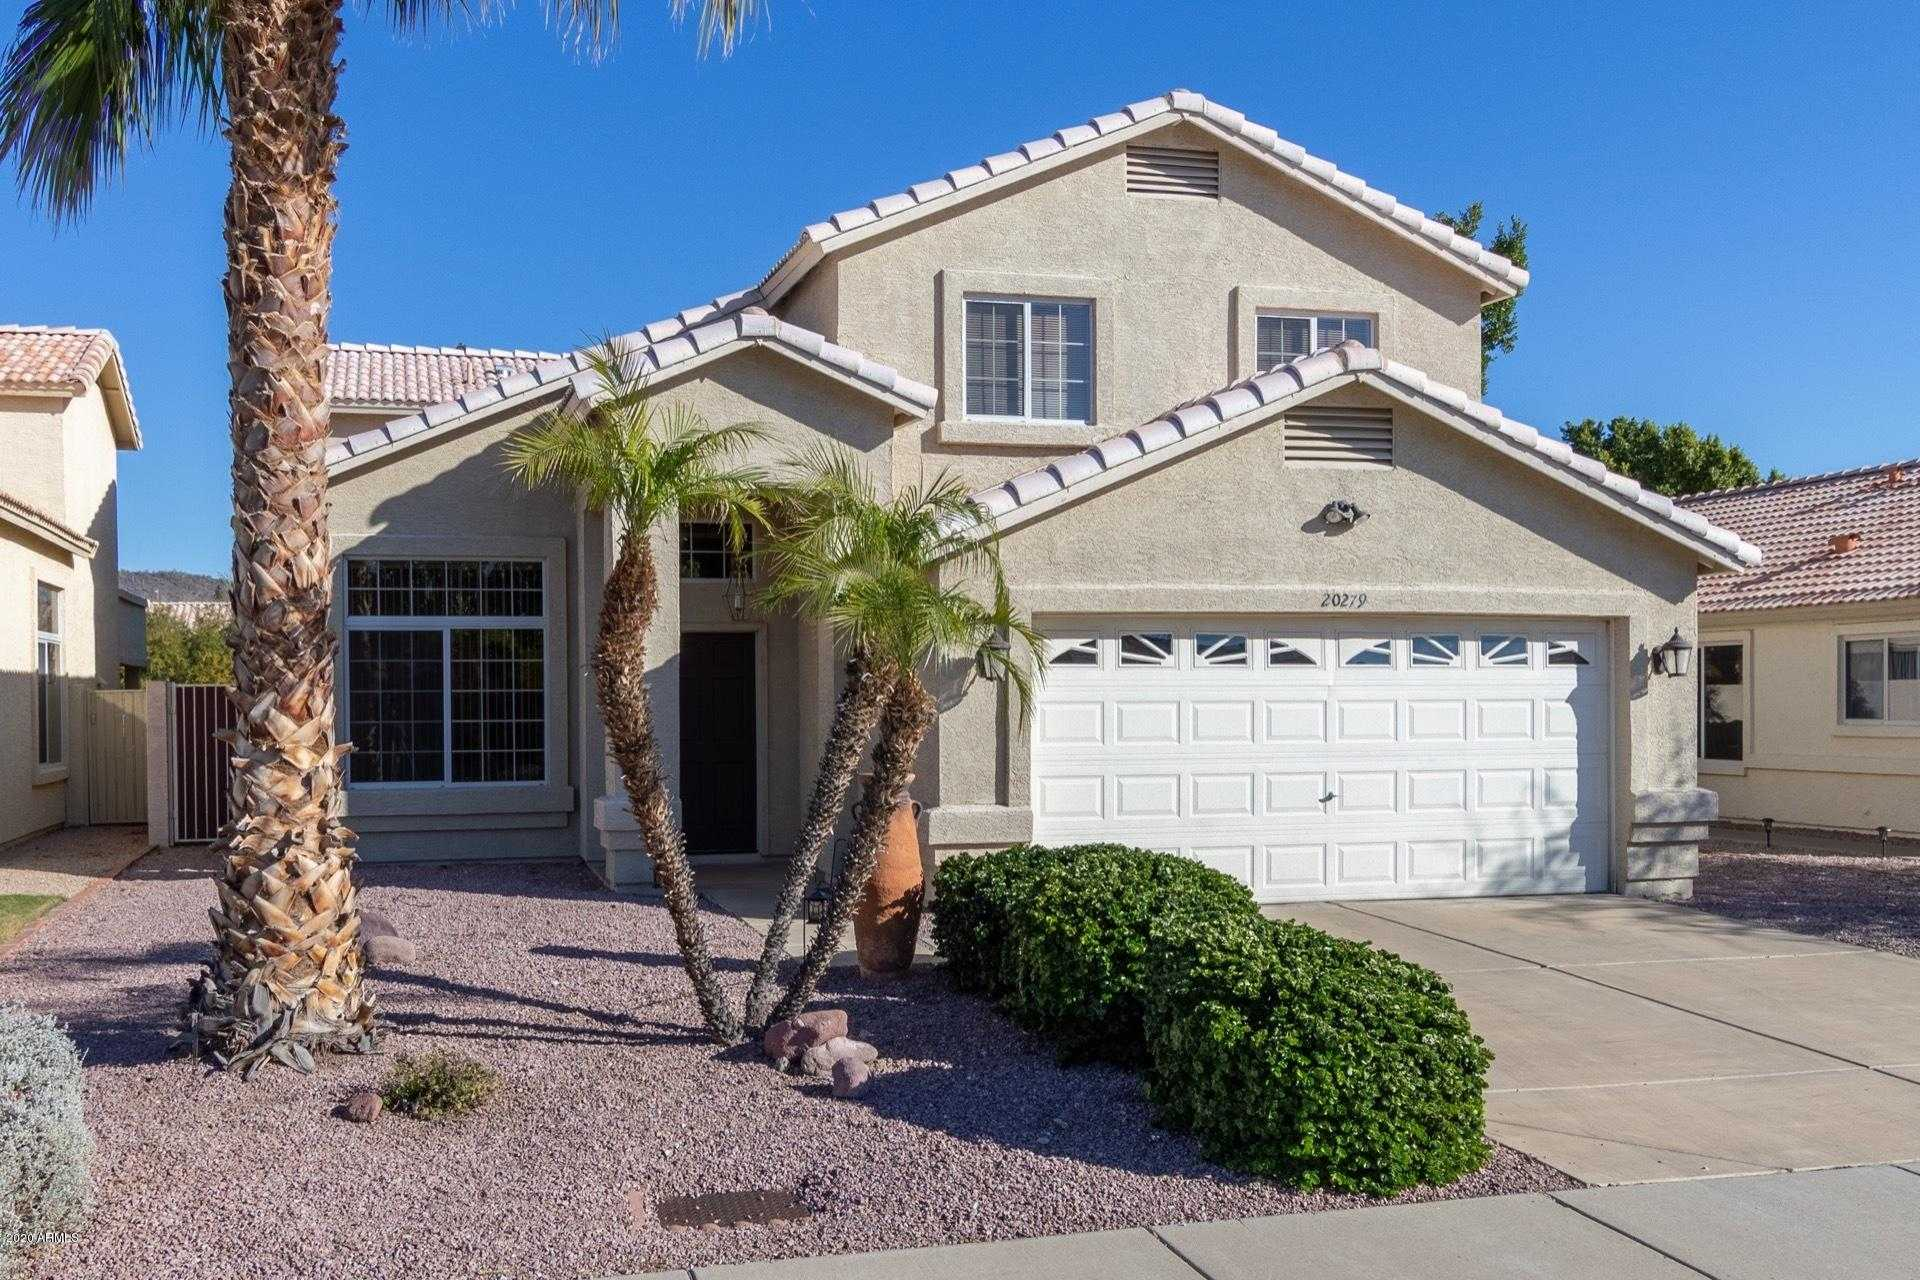 $429,900 - 4Br/3Ba - Home for Sale in Arrowhead Lakes Unit 8a, Glendale